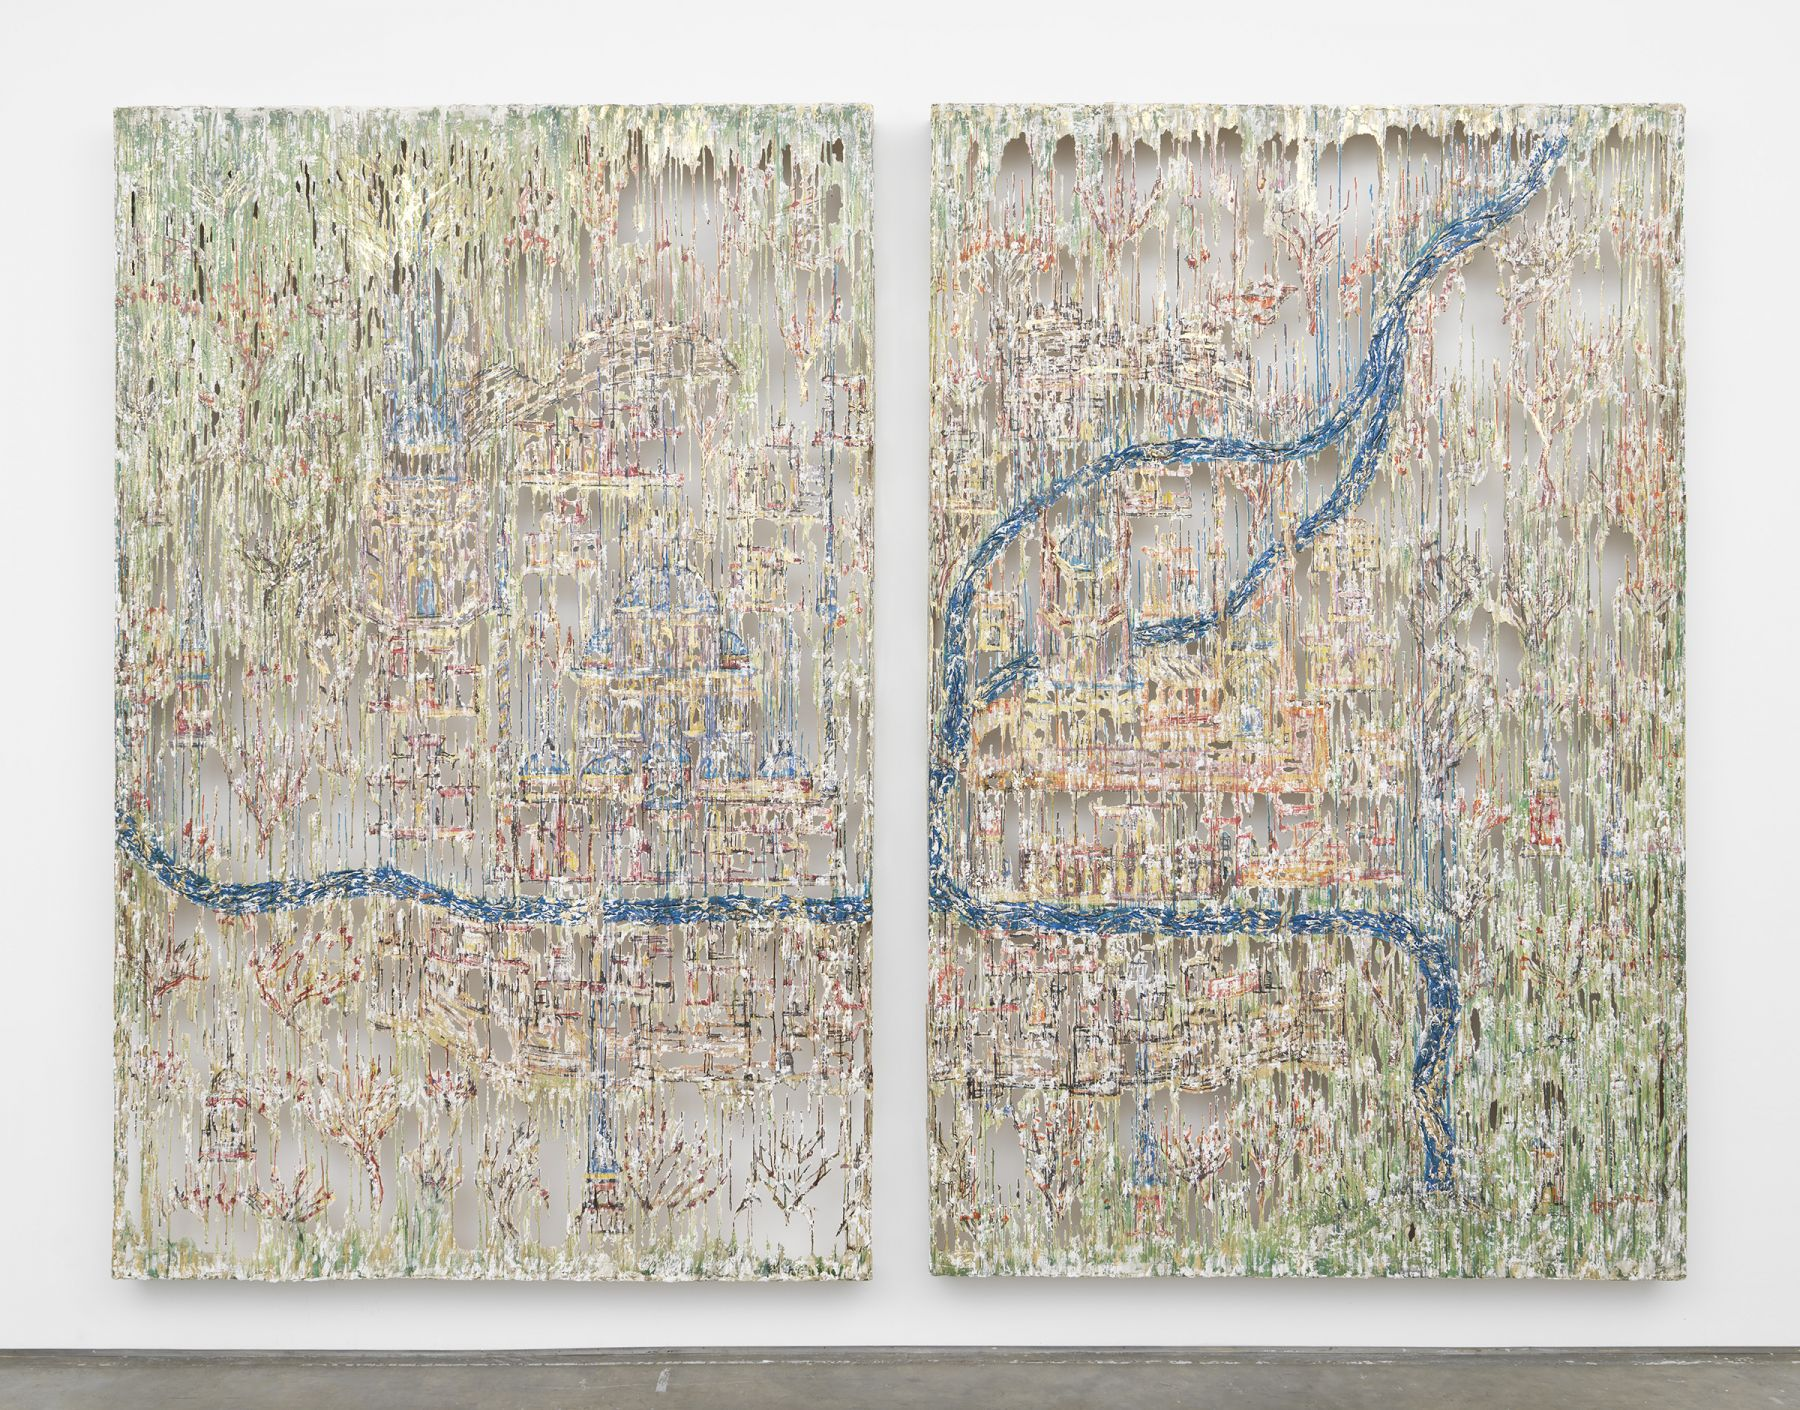 a colorful pair of drip panels made of fiberglass and polymer gypsum by Diana Al-Hadid